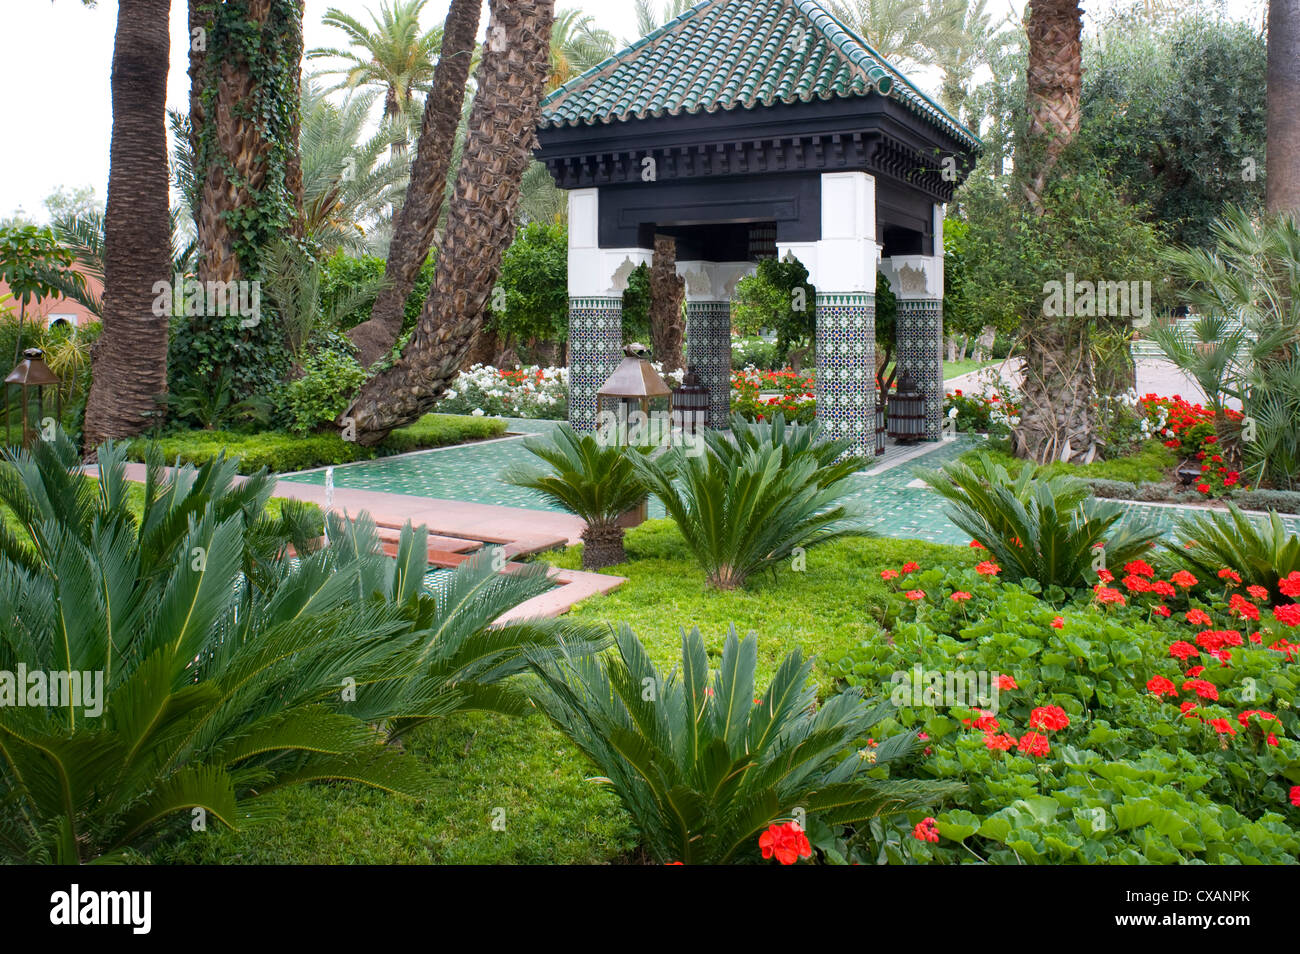 An ornately tiled pavilion surrounded by geraniums and palm trees in the garden of La Mamounia Hotel in Marrakech, - Stock Image